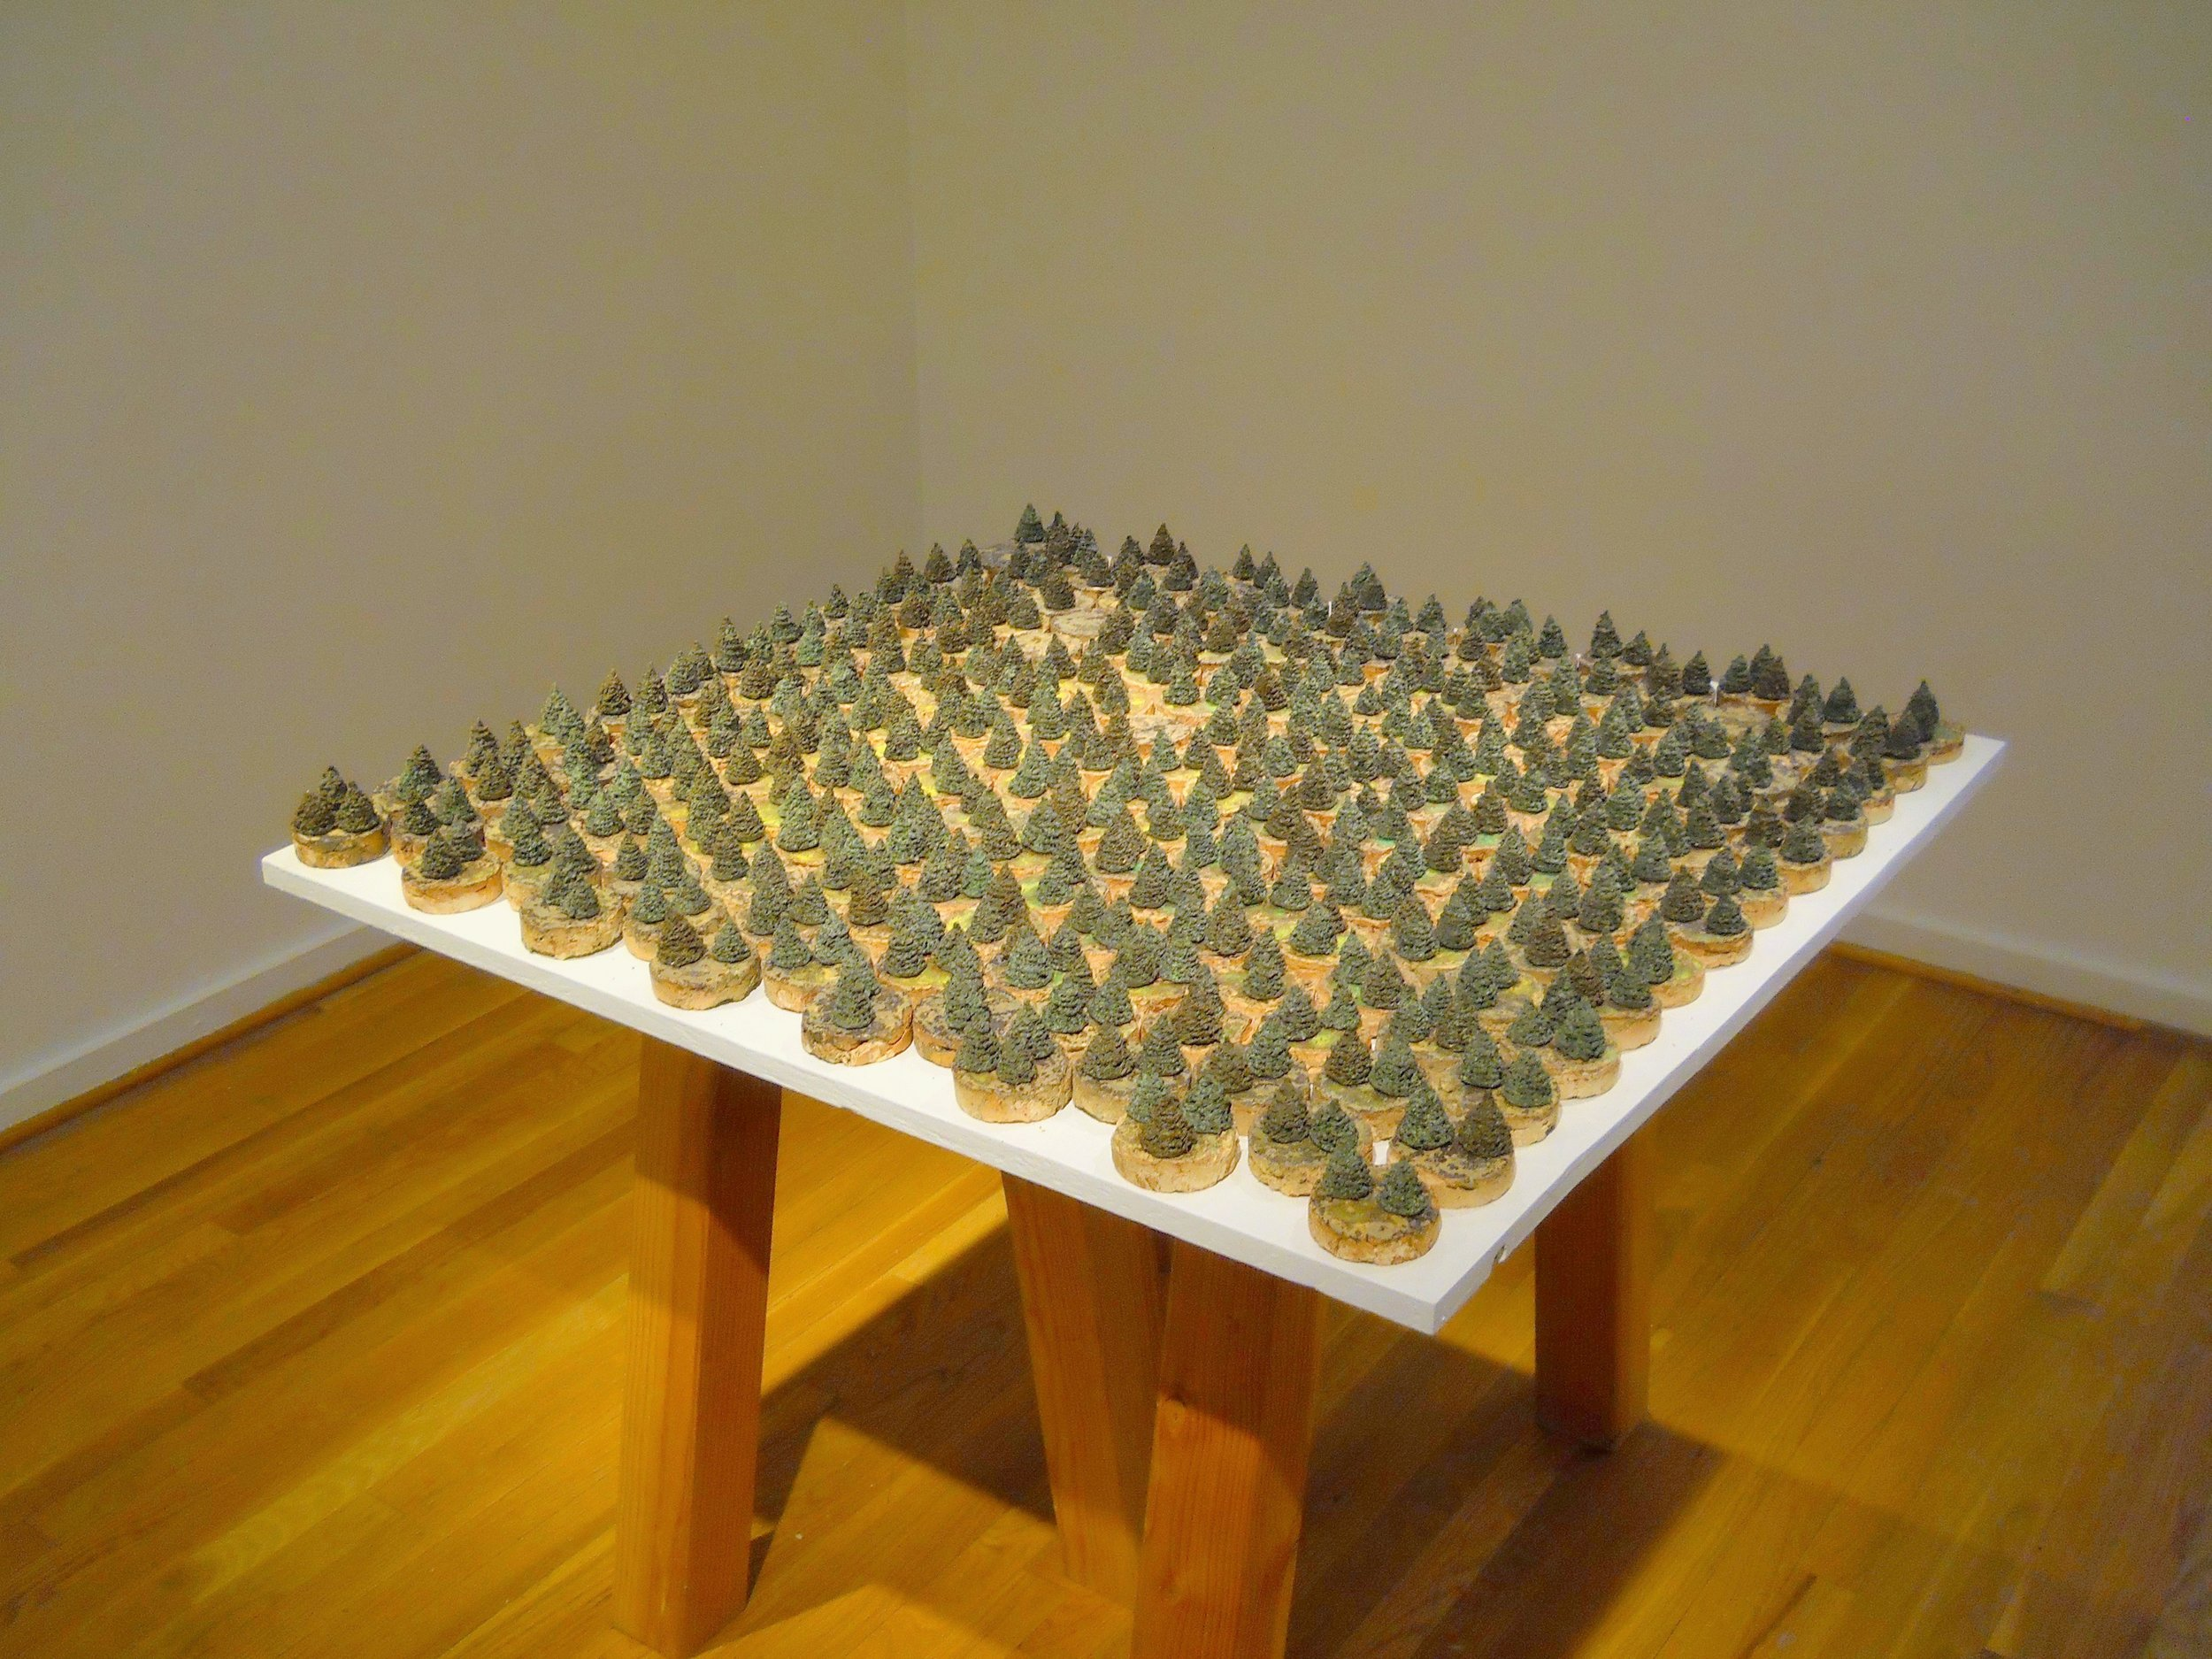 Township - 51 x 51 x 1.75various reclaimed and contaminated clays, waste glaze, unwanted stainAs displayed at the show Normal Objects (The Clay Studio, 2017), the Township is divided into parcels of land and the viewer may select any of these areas for purchase. Once the transaction has taken place, they have the option to conserve the forest and leave the object(s) purchased in their place, or to replace the forested area with a blank object with no trees, thus deforesting the areas.